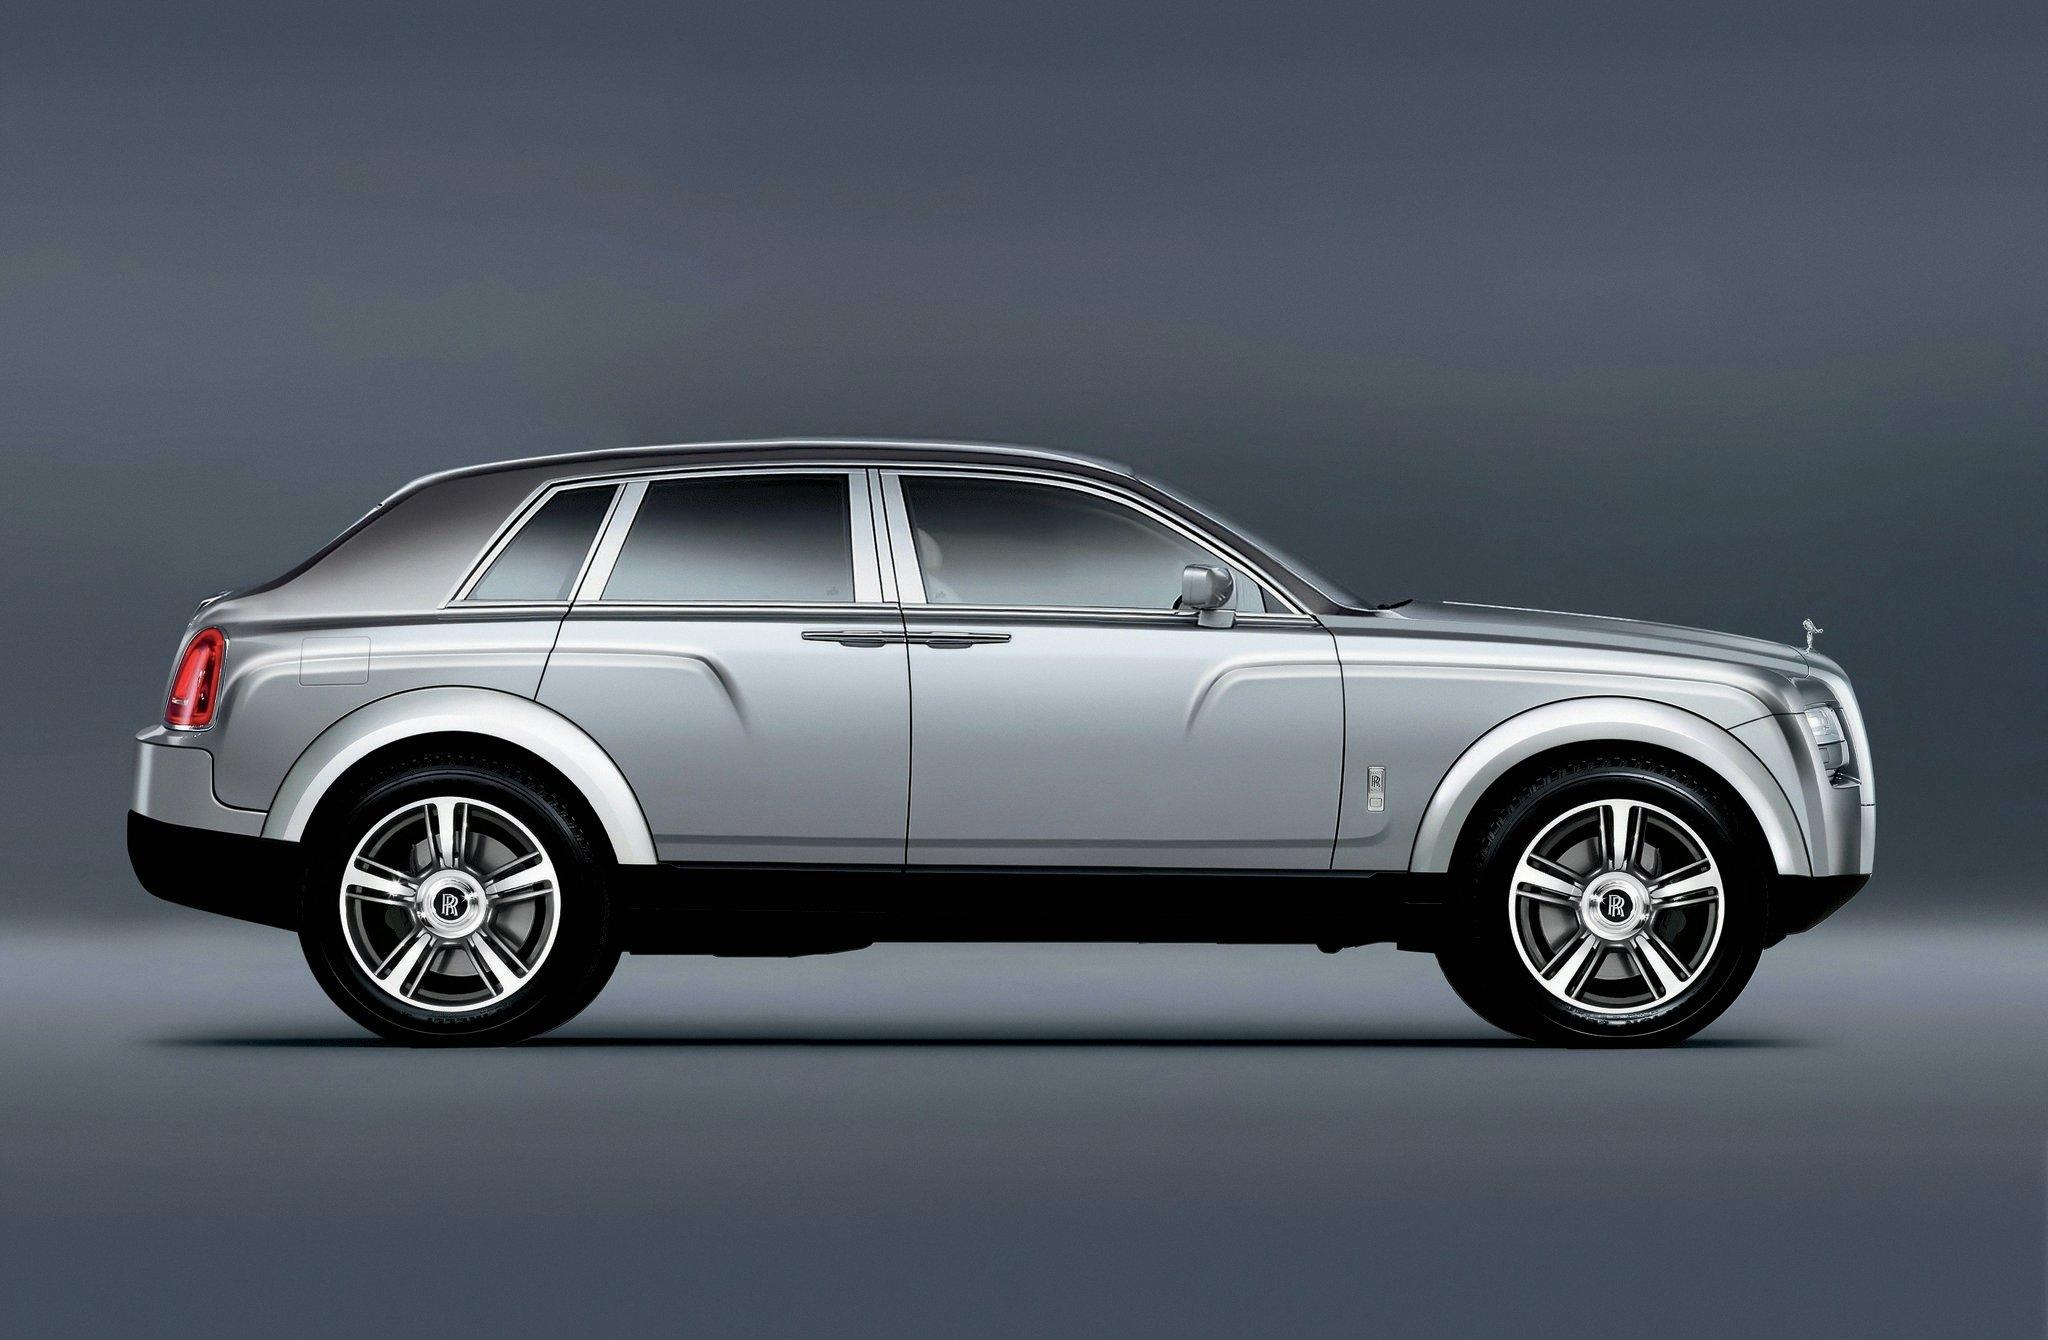 Rolls Royce Suv Will Be Significantly Different Than The